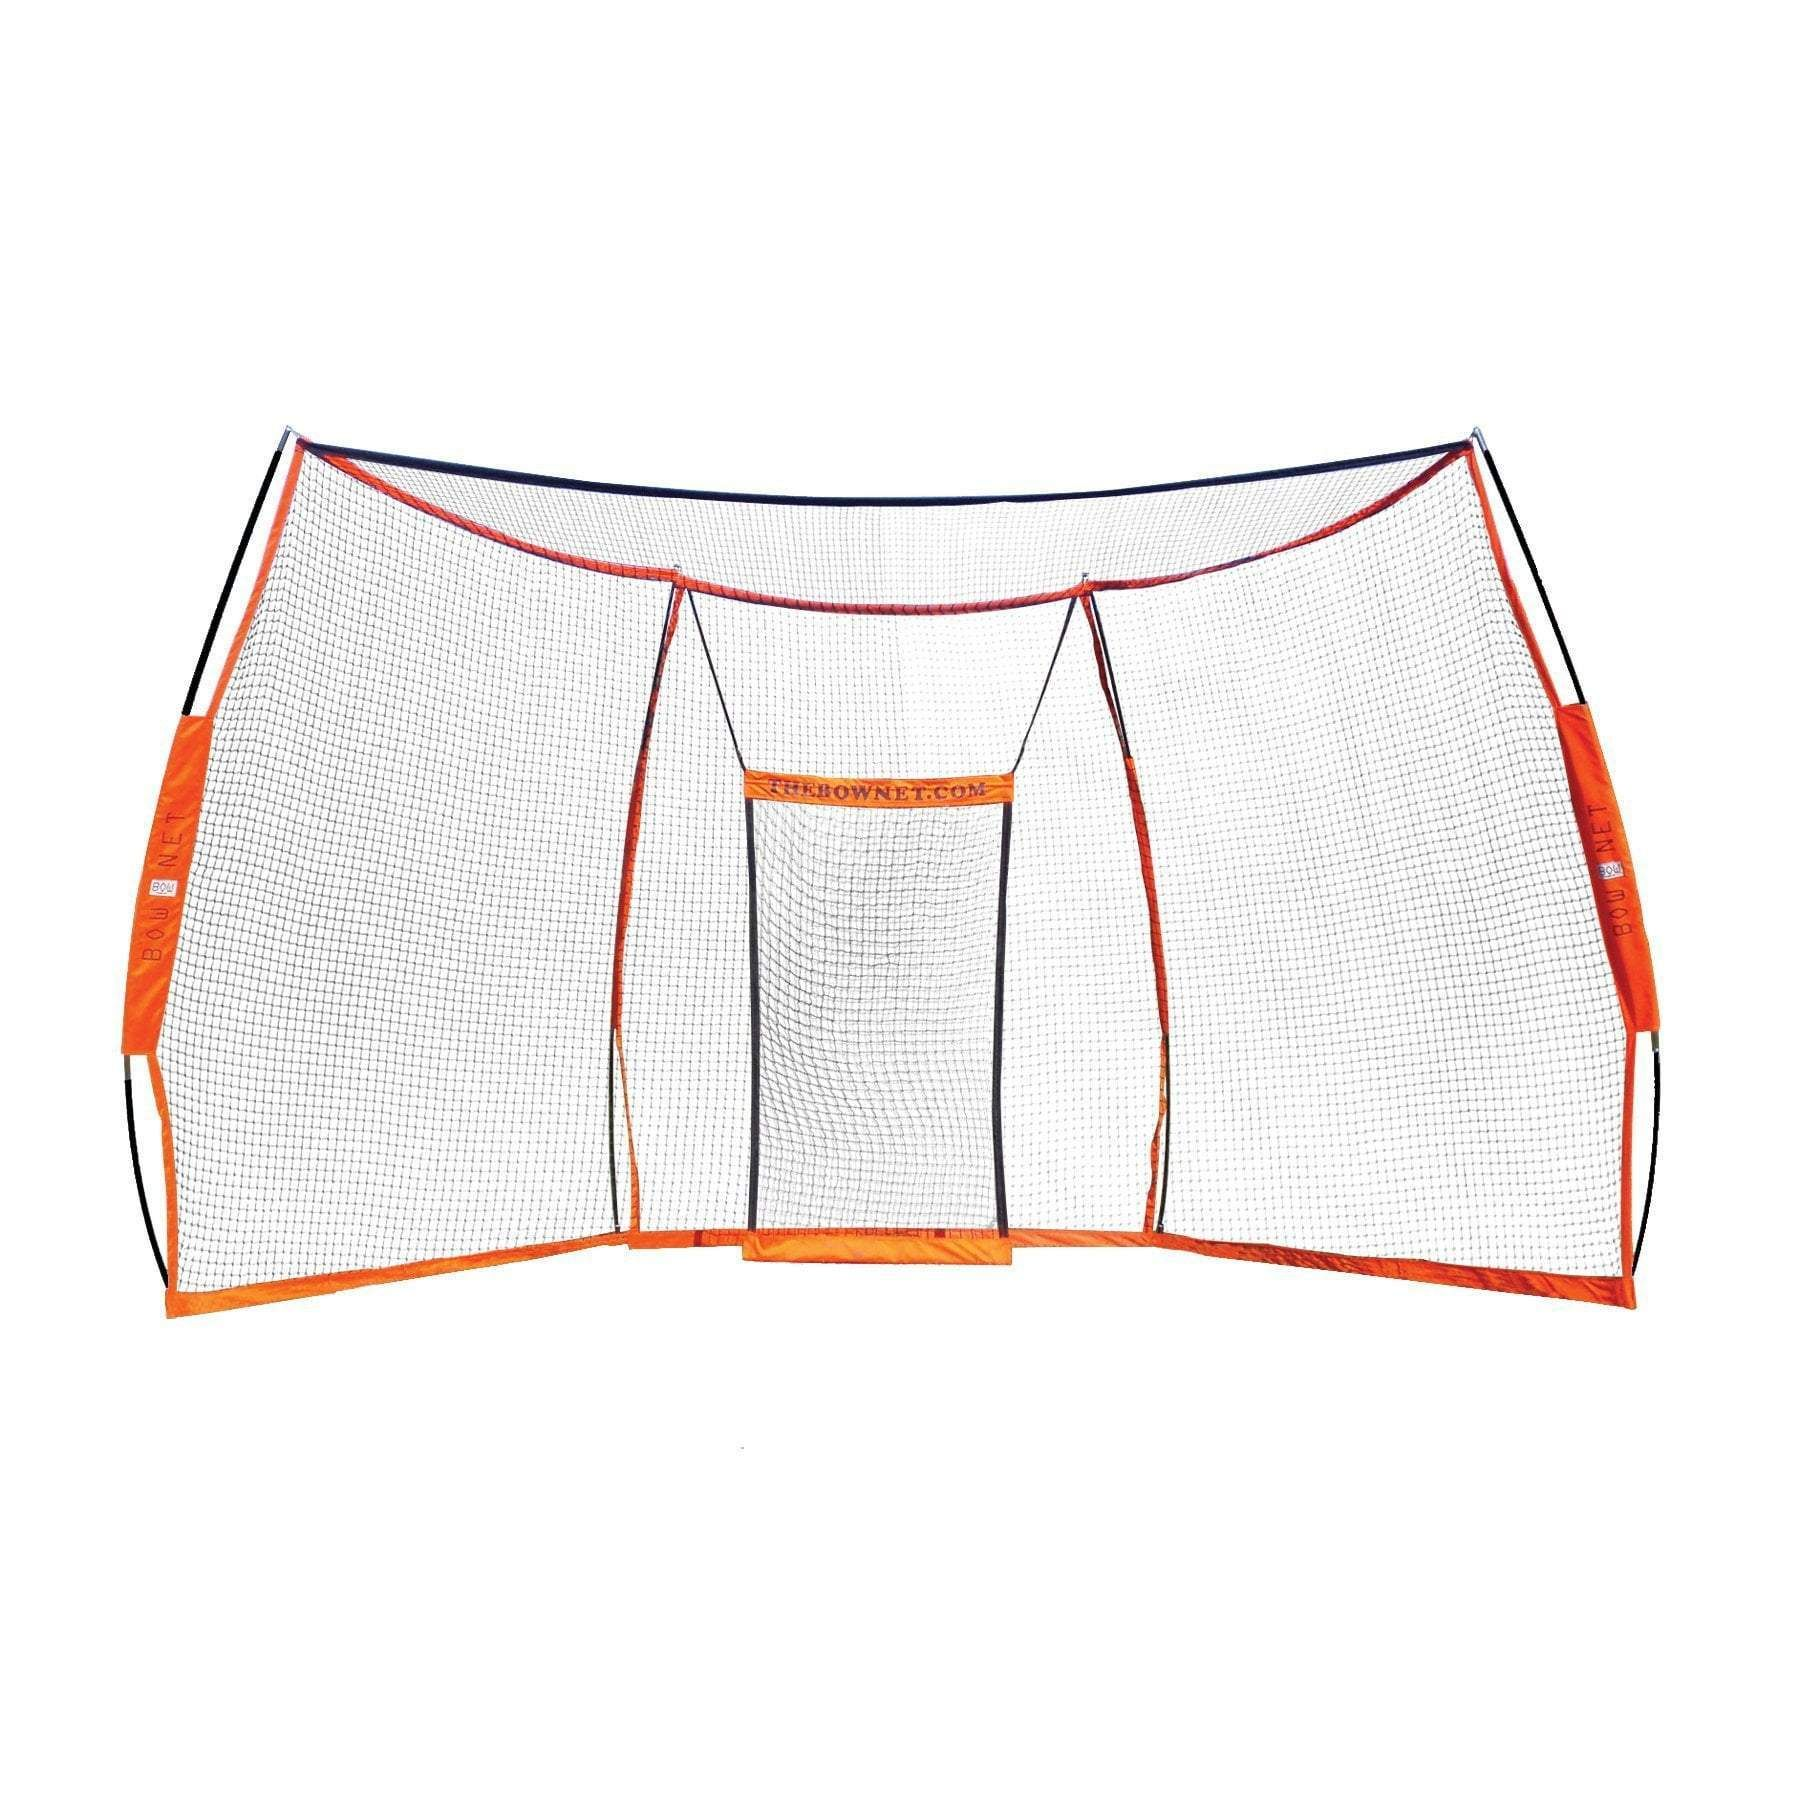 Bownet Multi Sports Portable Backstop Bow Backstop Sports Safety Wiffle Ball Sports